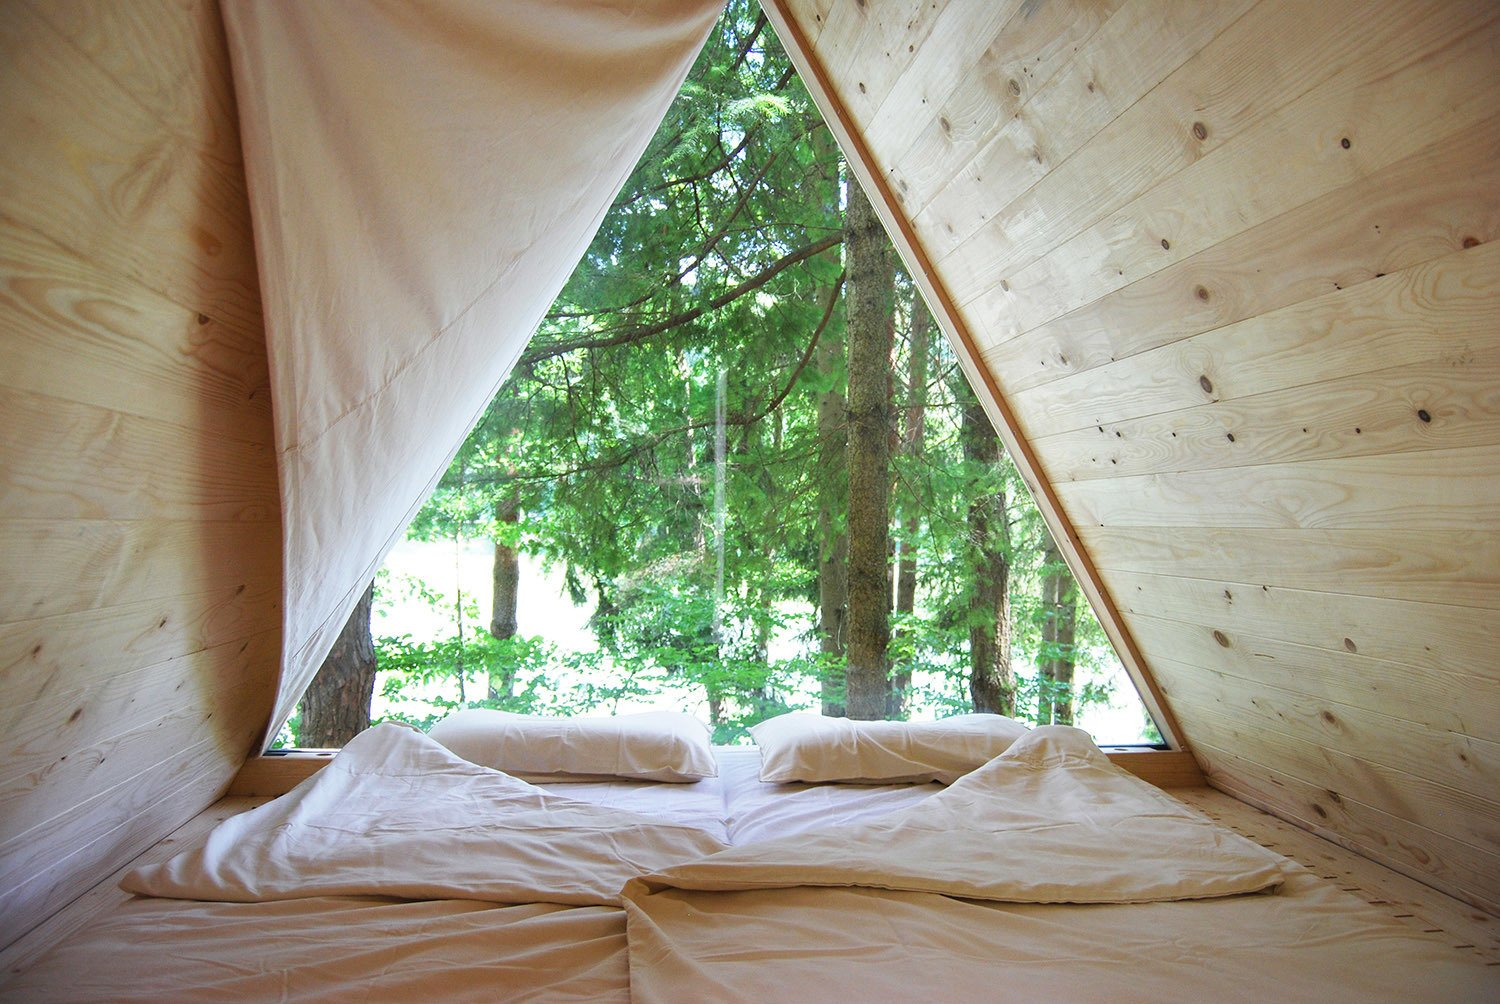 Bedroom and Bed The units don't even require foundations—simple ground screws from Krinner are enough to support them.  The Prefab Glamping Experience You've Been Waiting For by Zachary Edelson